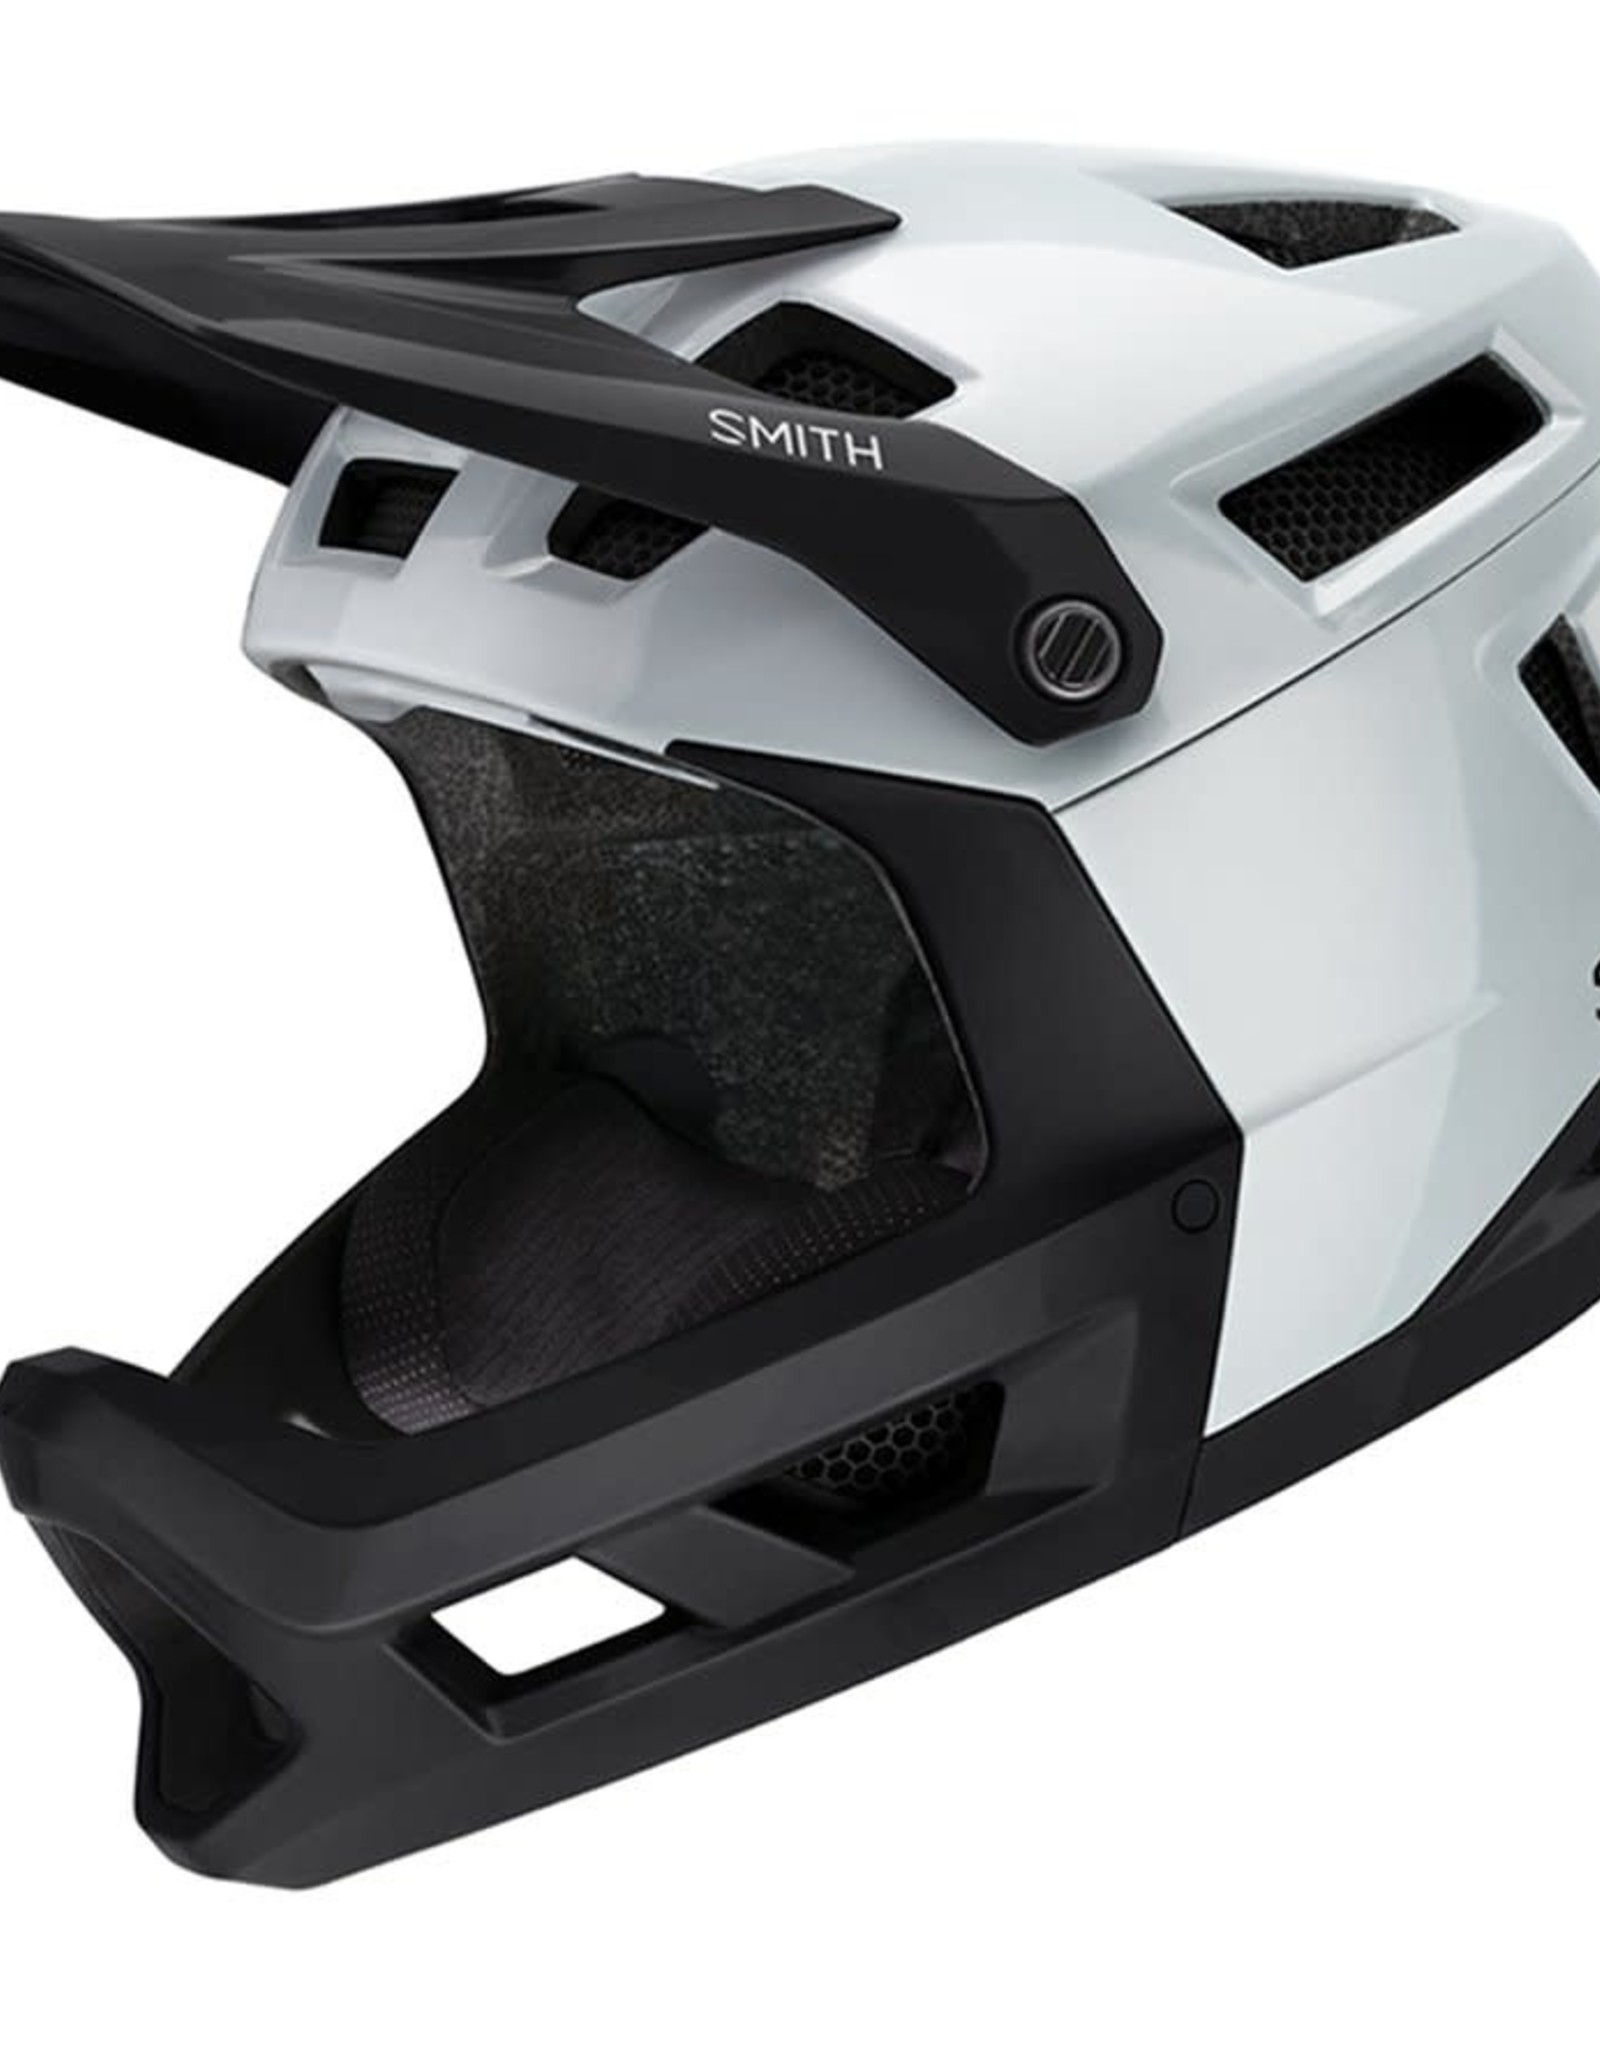 SMITH HELMET MAINLINE